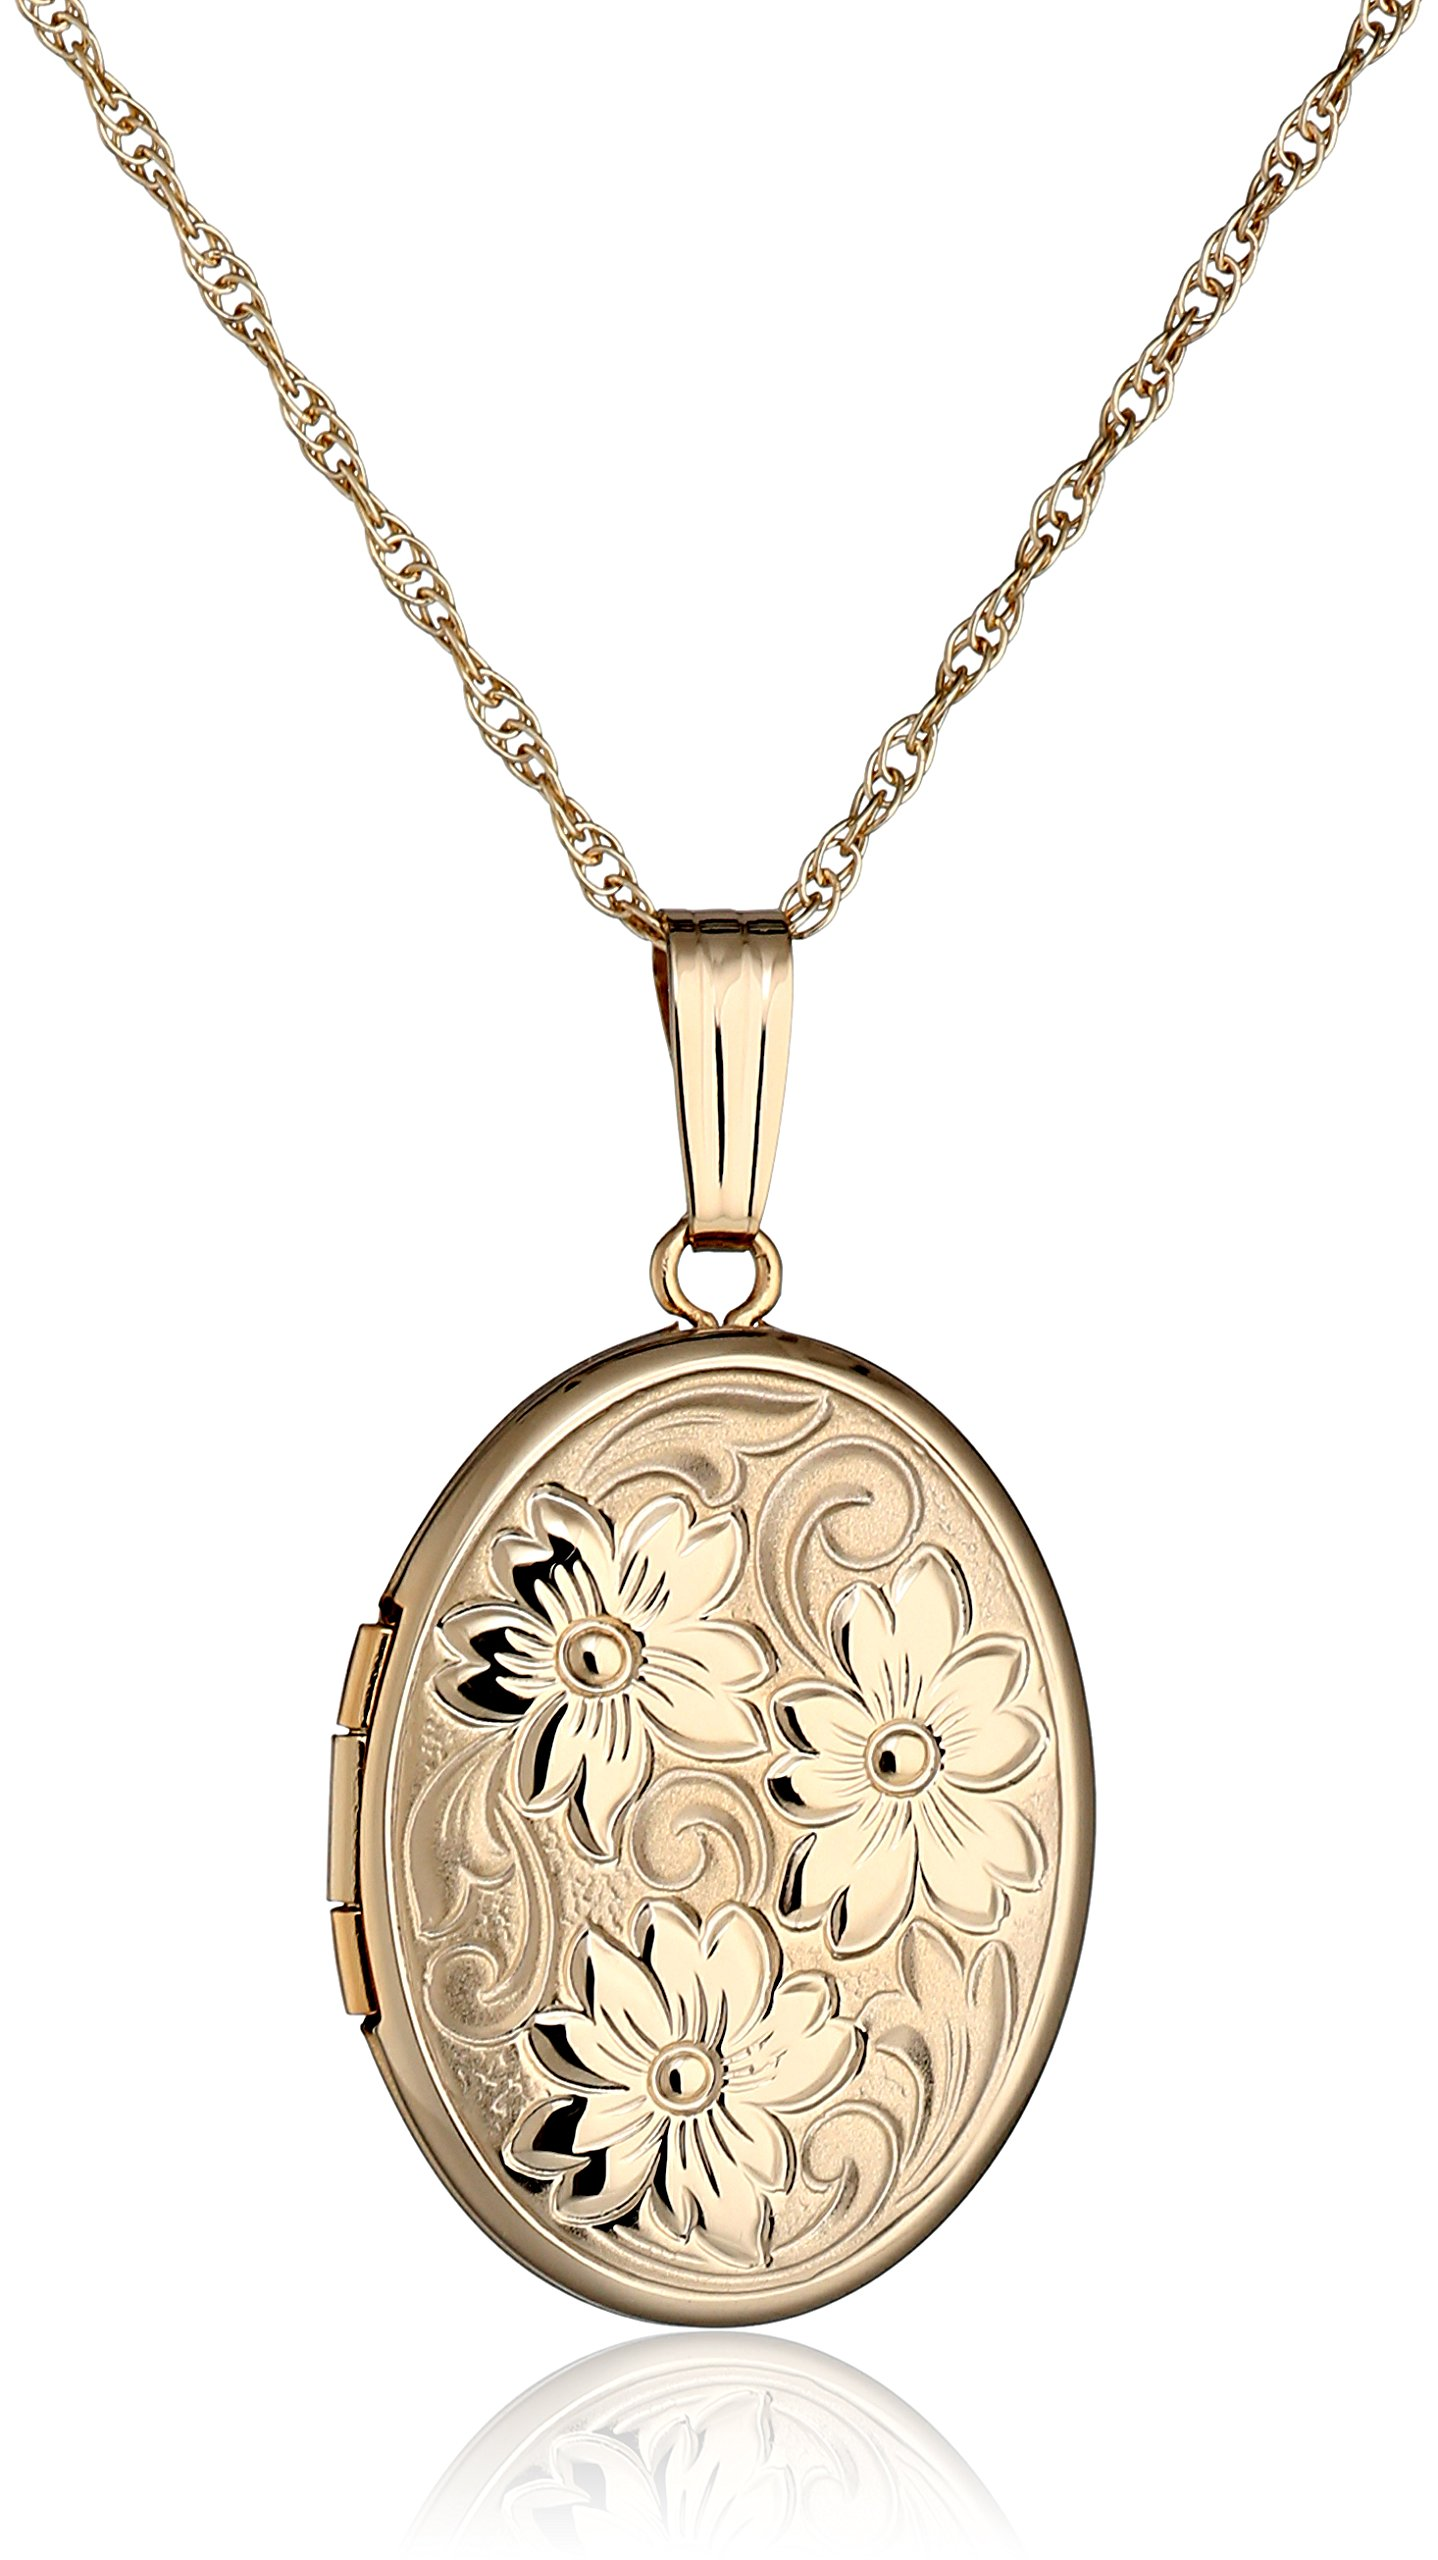 14k Yellow Gold Embossed Polished Oval Locket Necklace, 18''